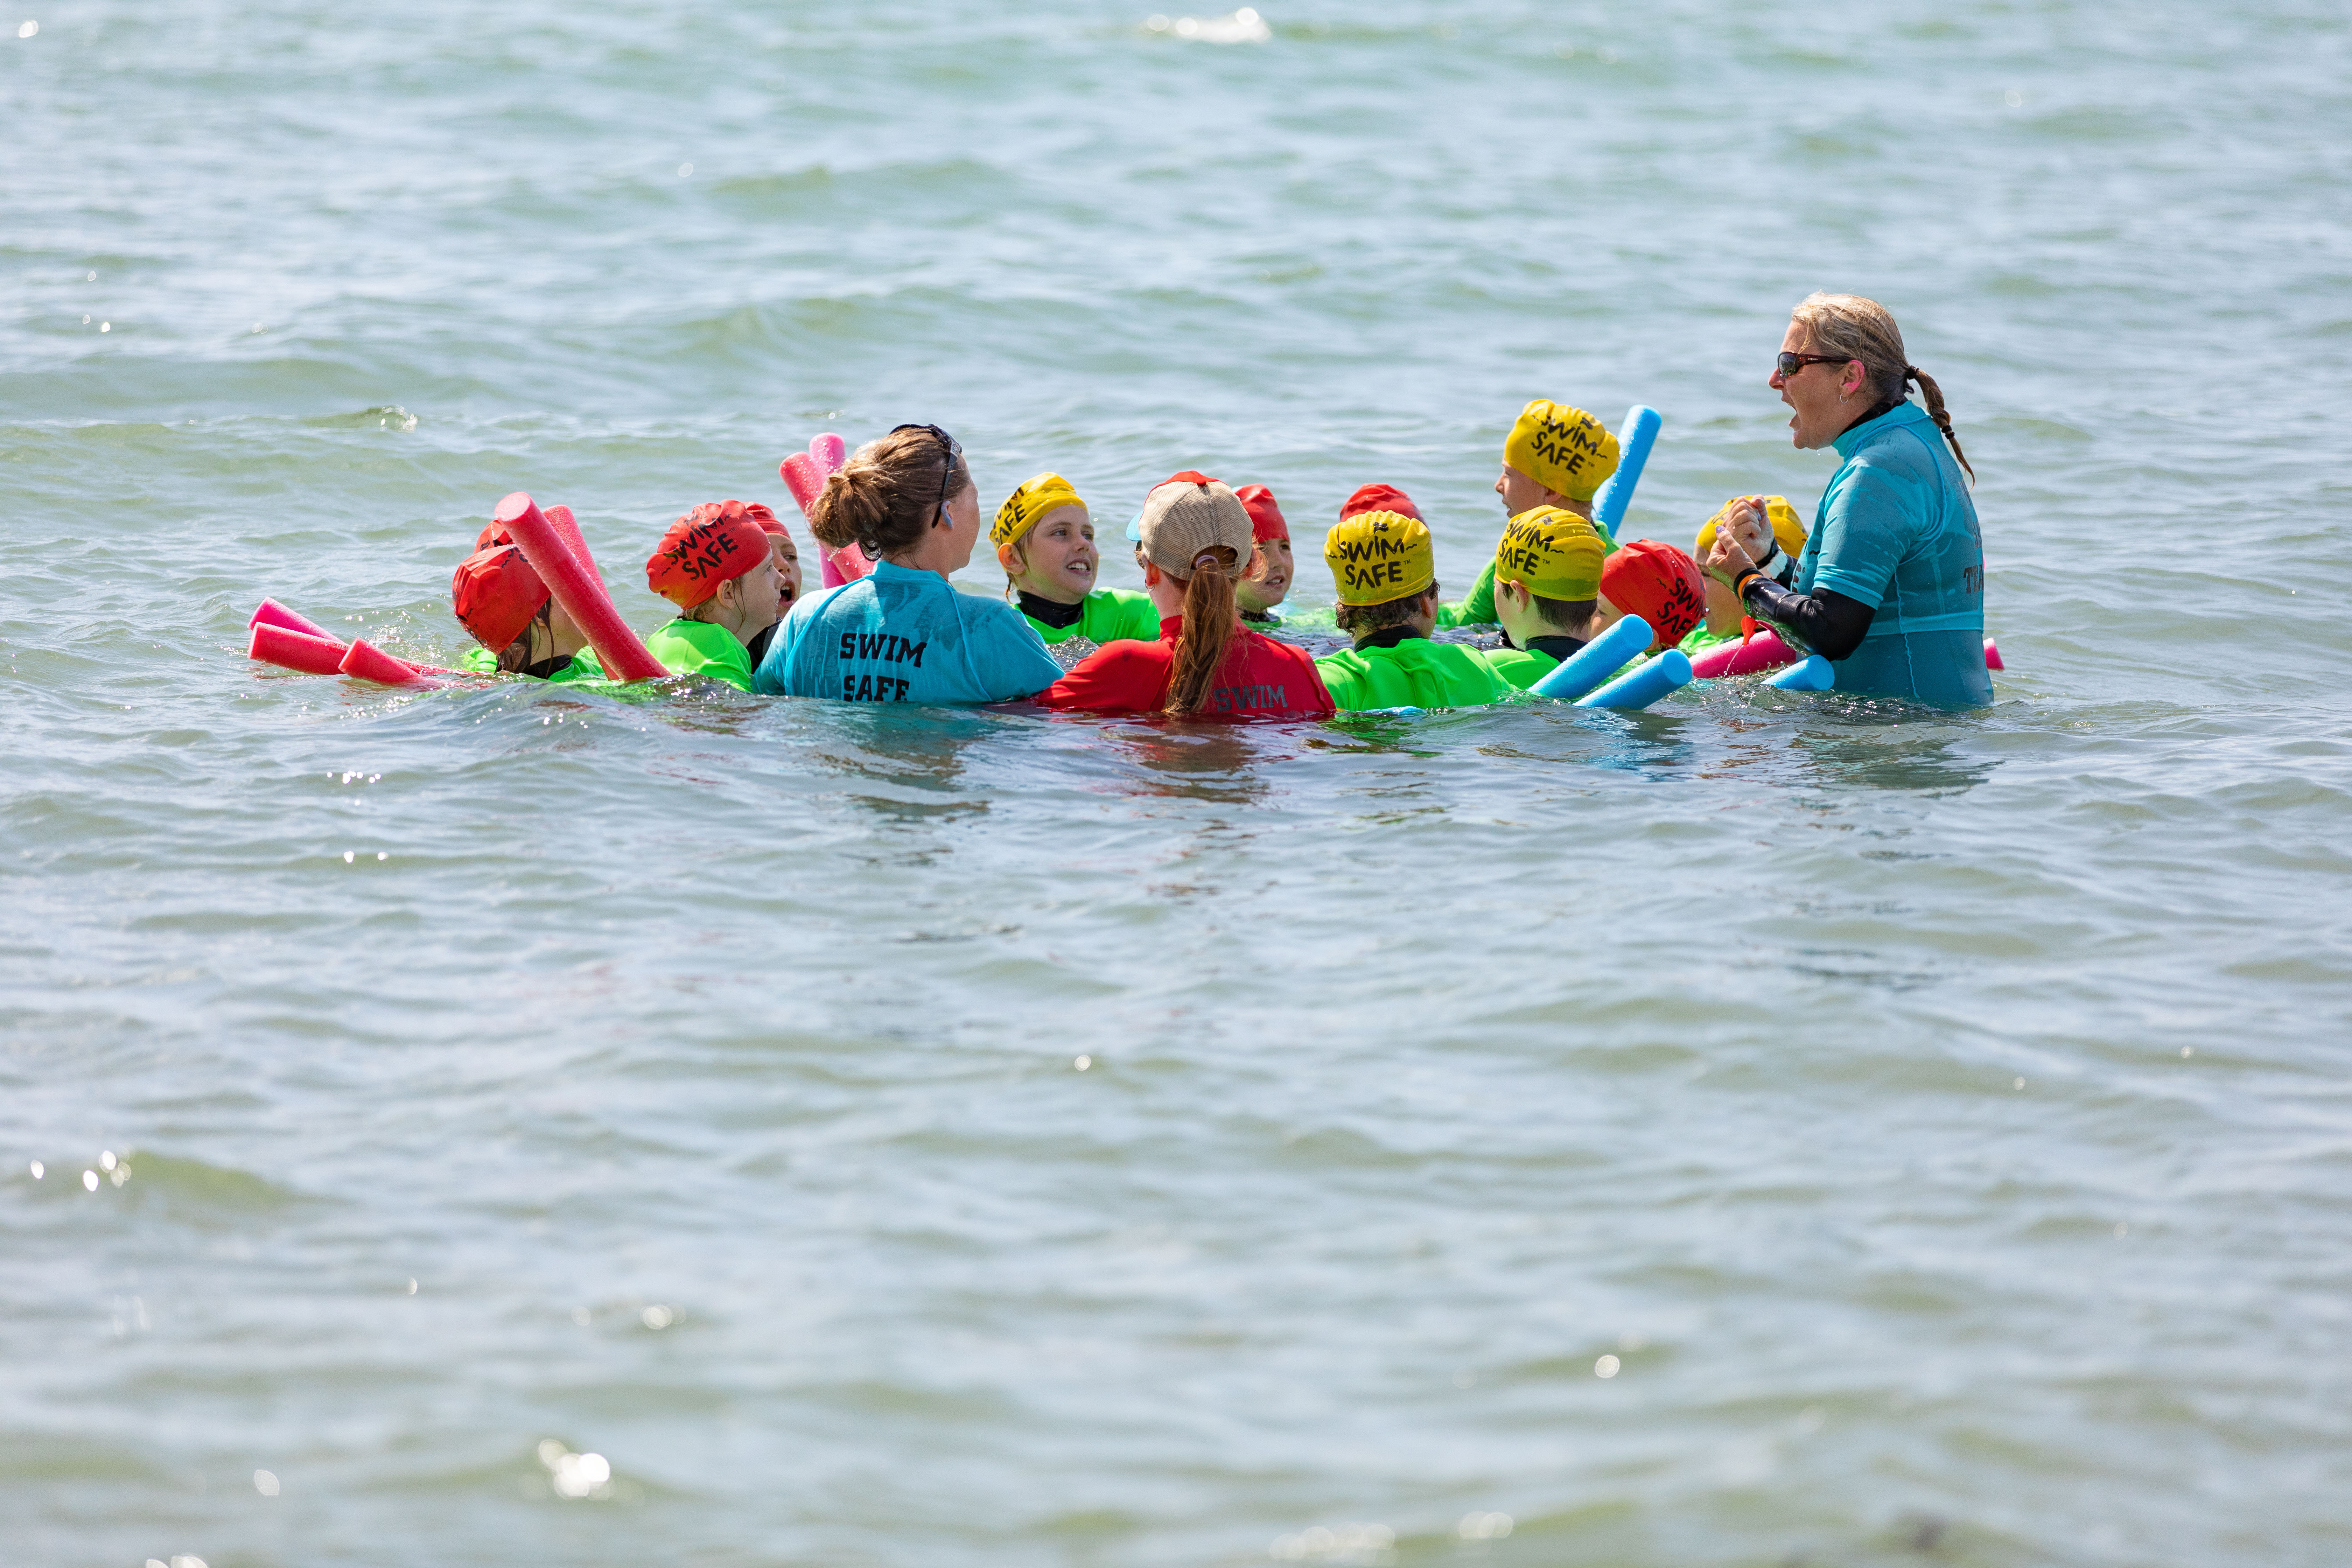 Teaching the youngsters how to stay safe in the water is a vital part of Swim Safe.